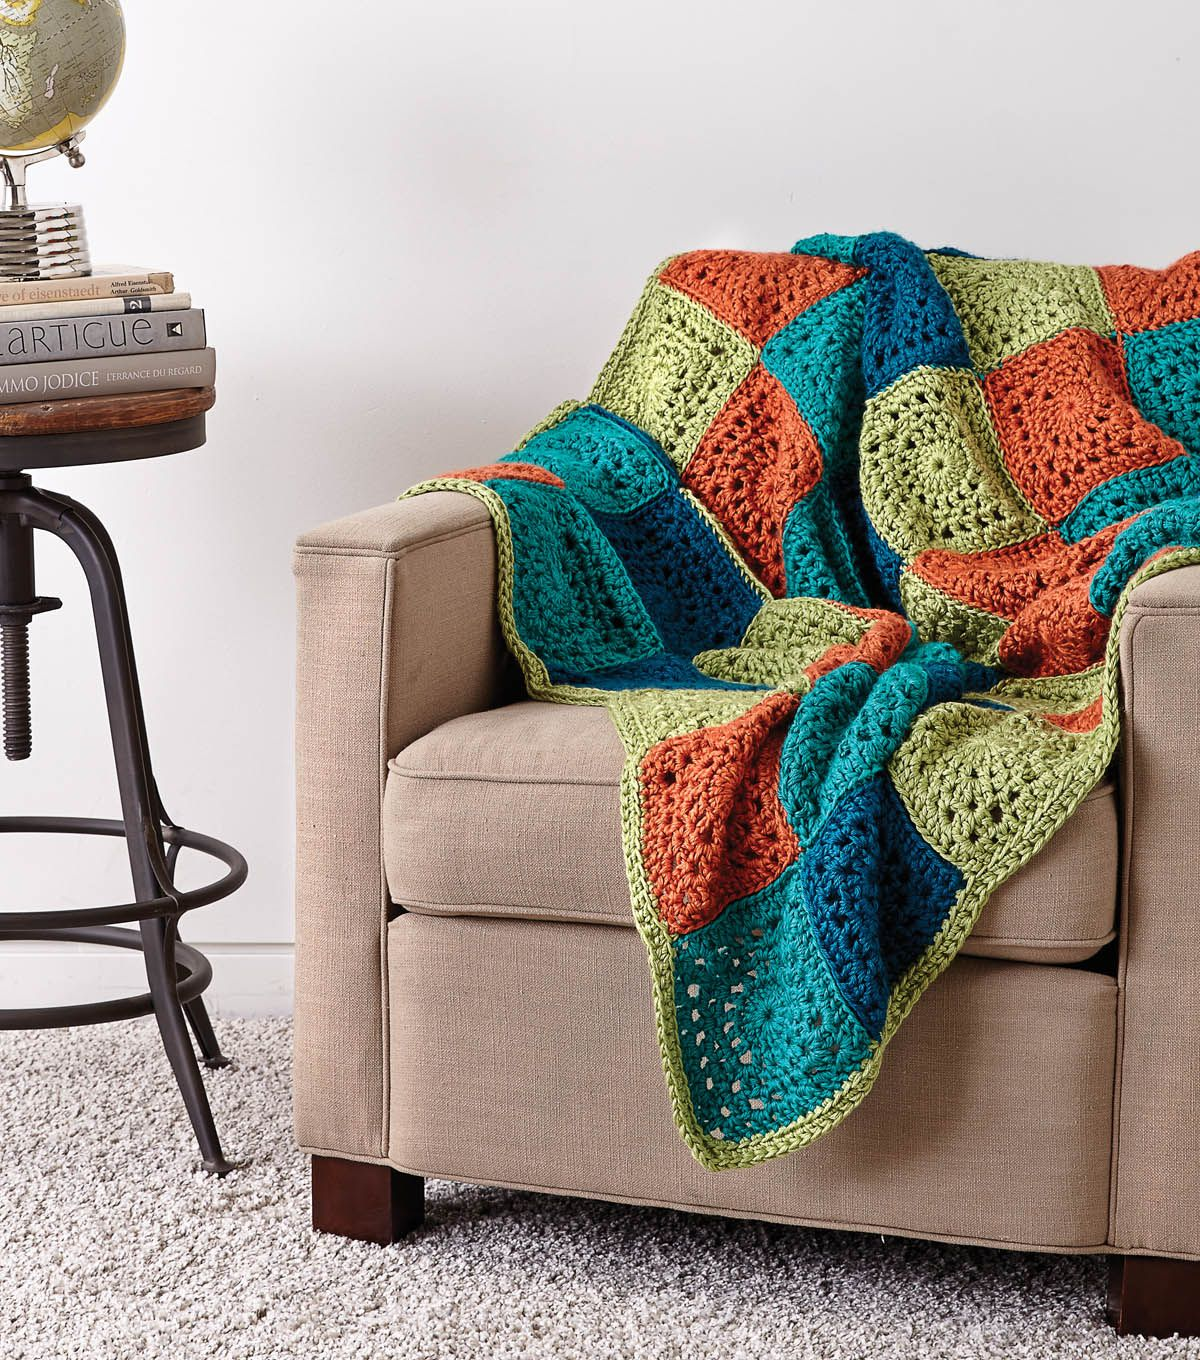 Free Fall Crochet Afghan Patterns | Patchwork blanket, Free crochet ...